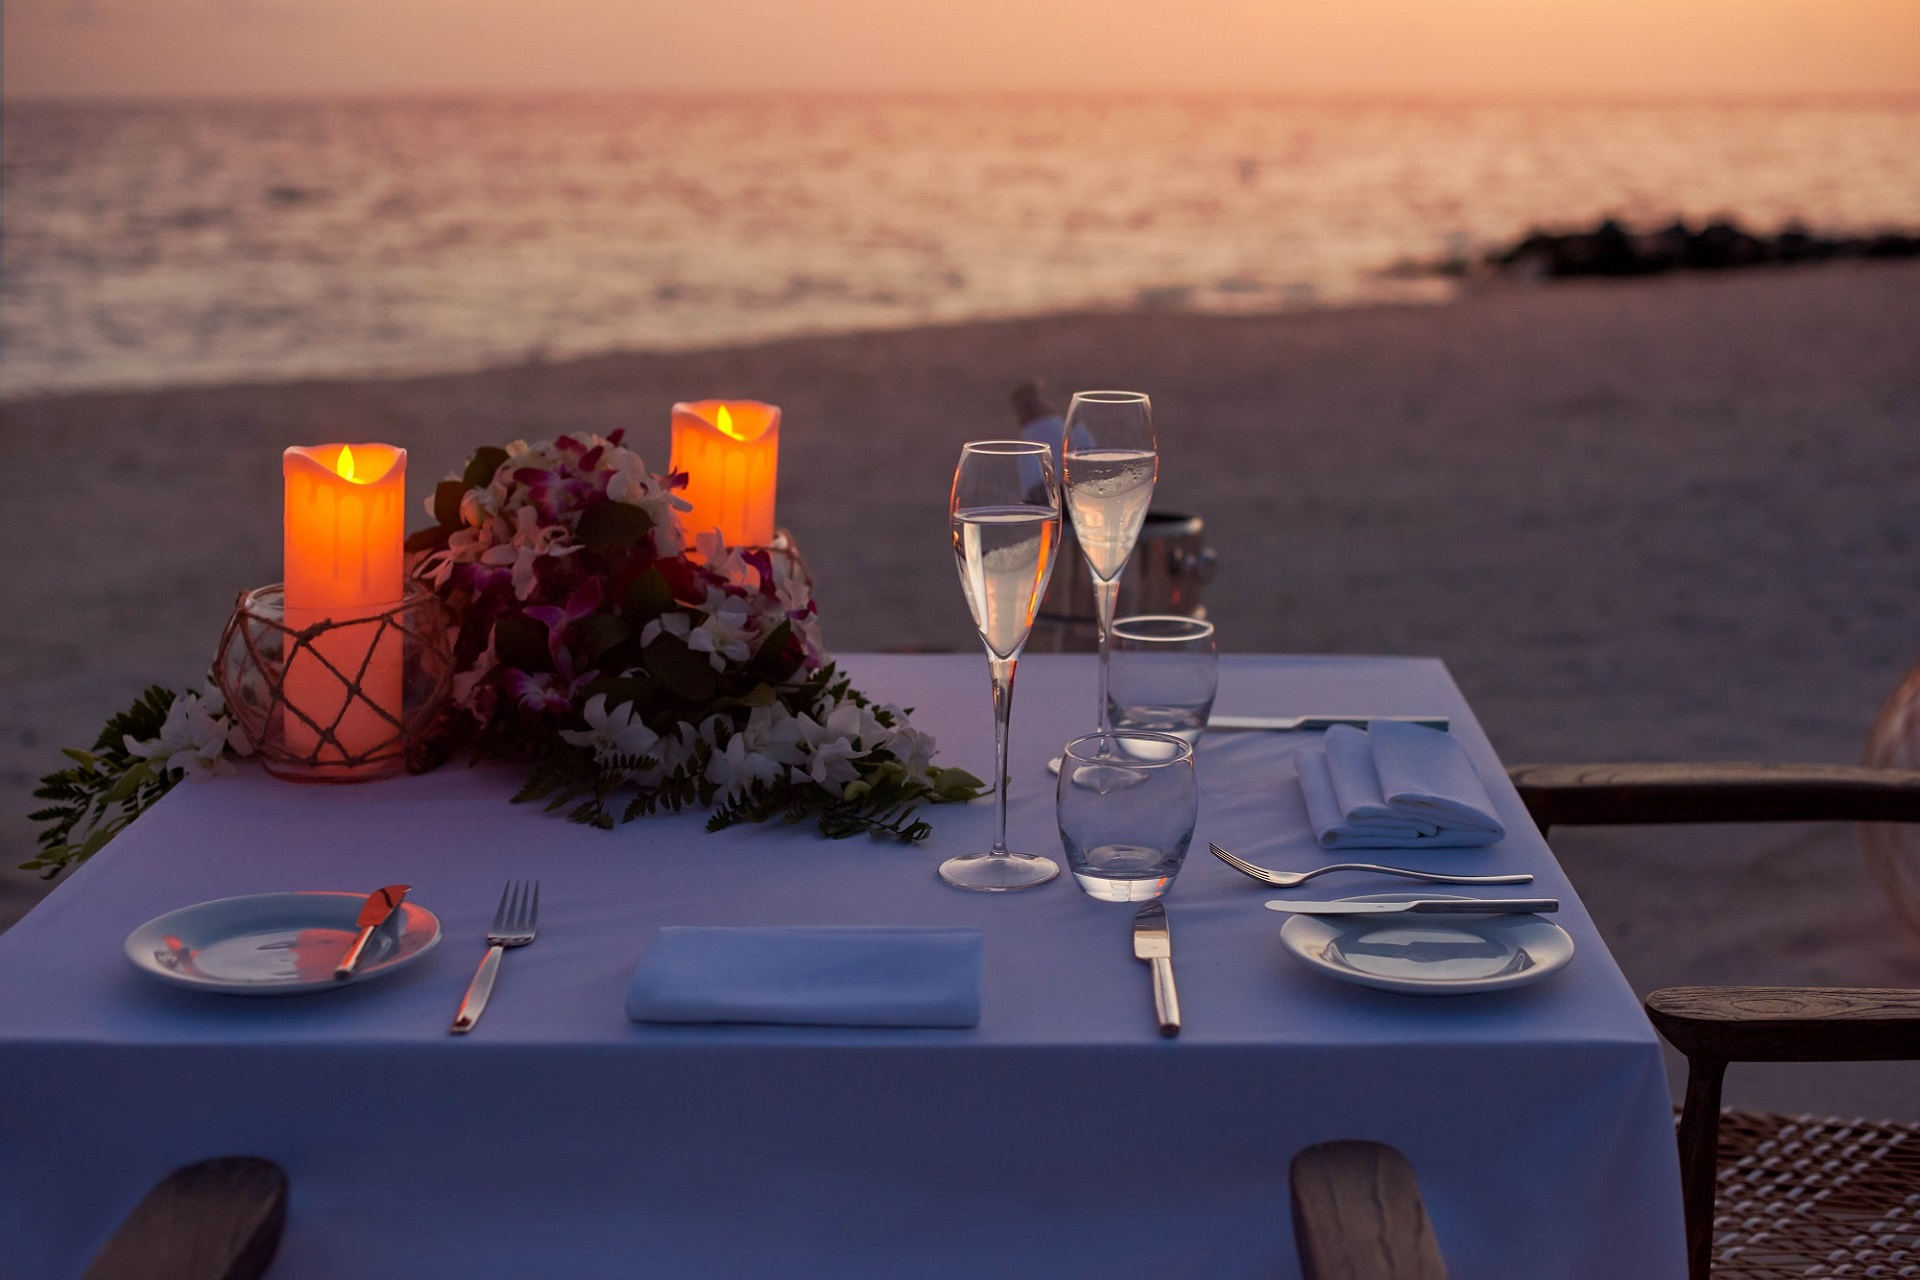 romantic dinner by the beach at sunset